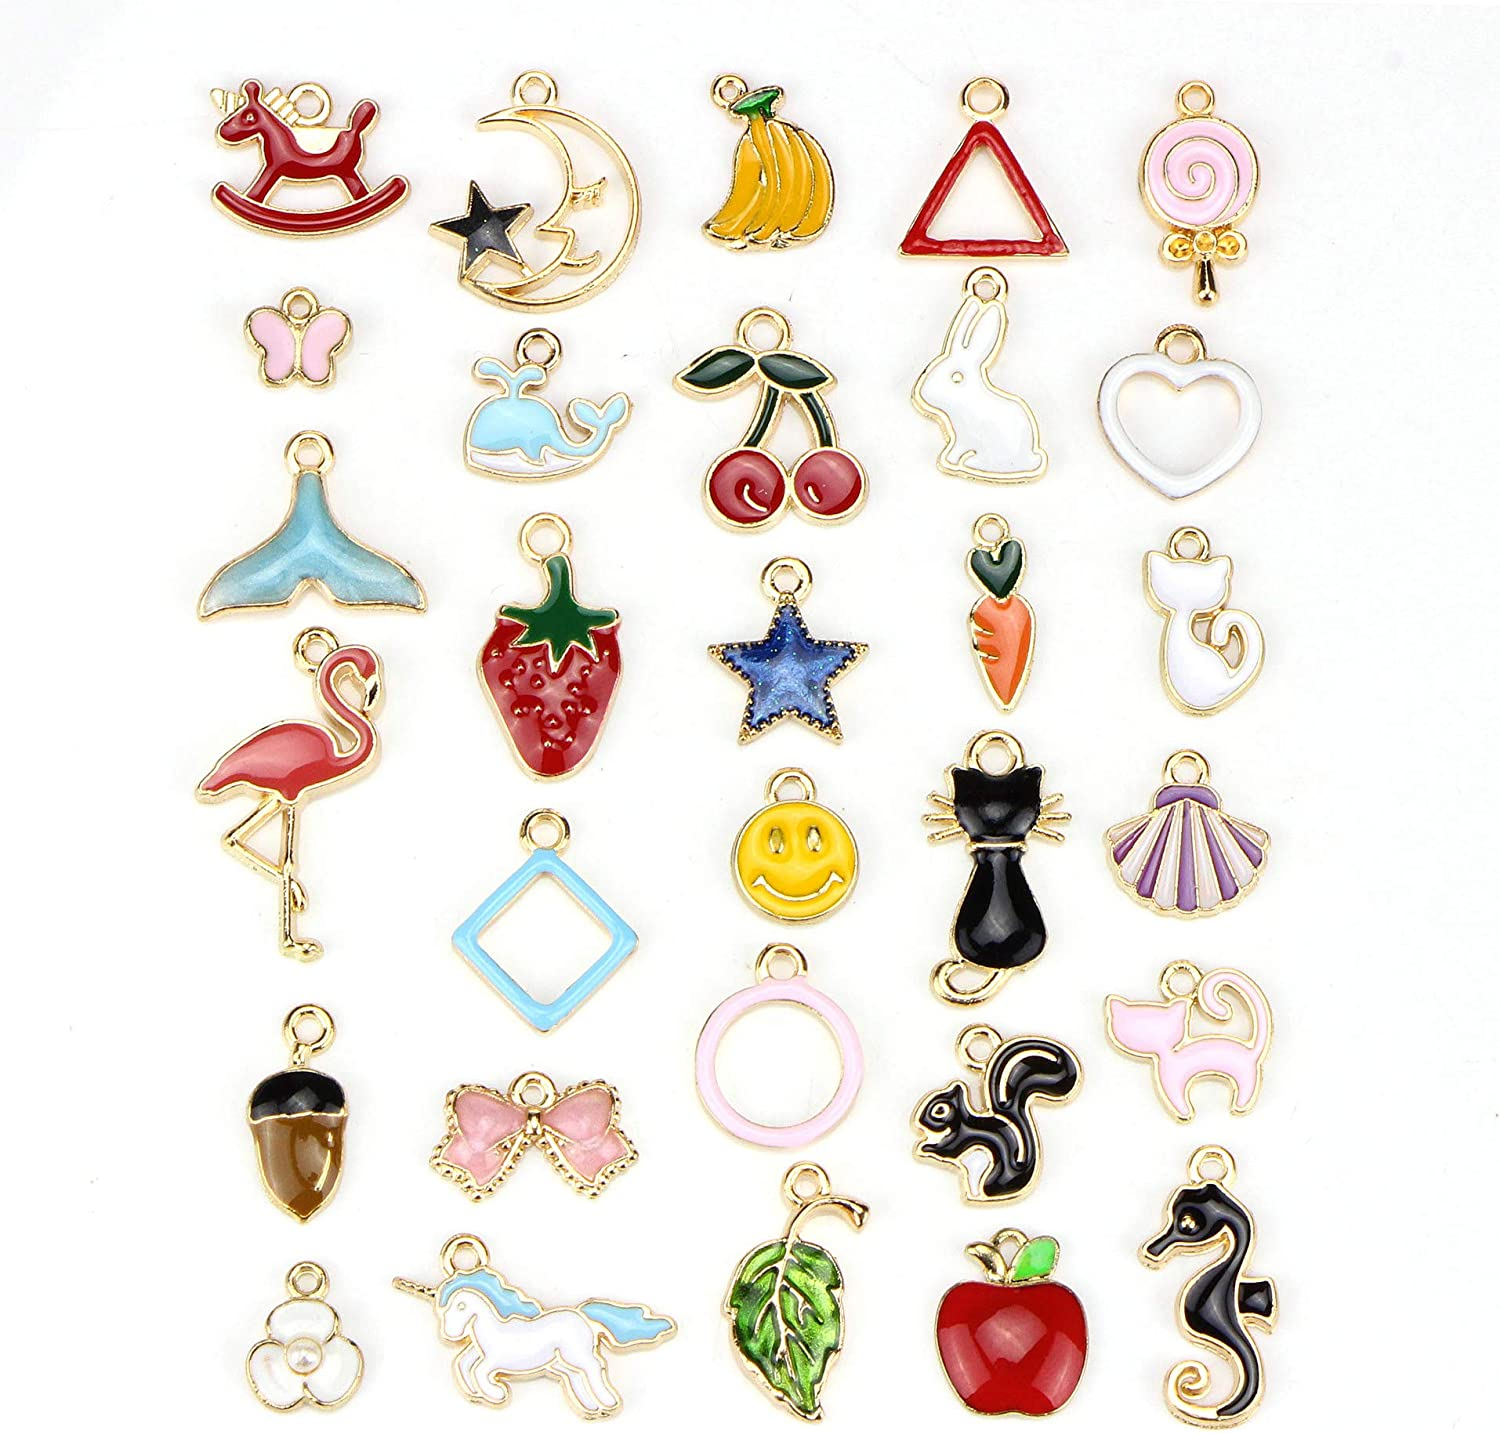 Youkwer 30pcs Mixed Colorful Charms Pendants for Jewelry Making, DIY Craft Charms Bulk for Necklace Bracelet Jewelry Making Crafting(30 Colorful Charms A2)